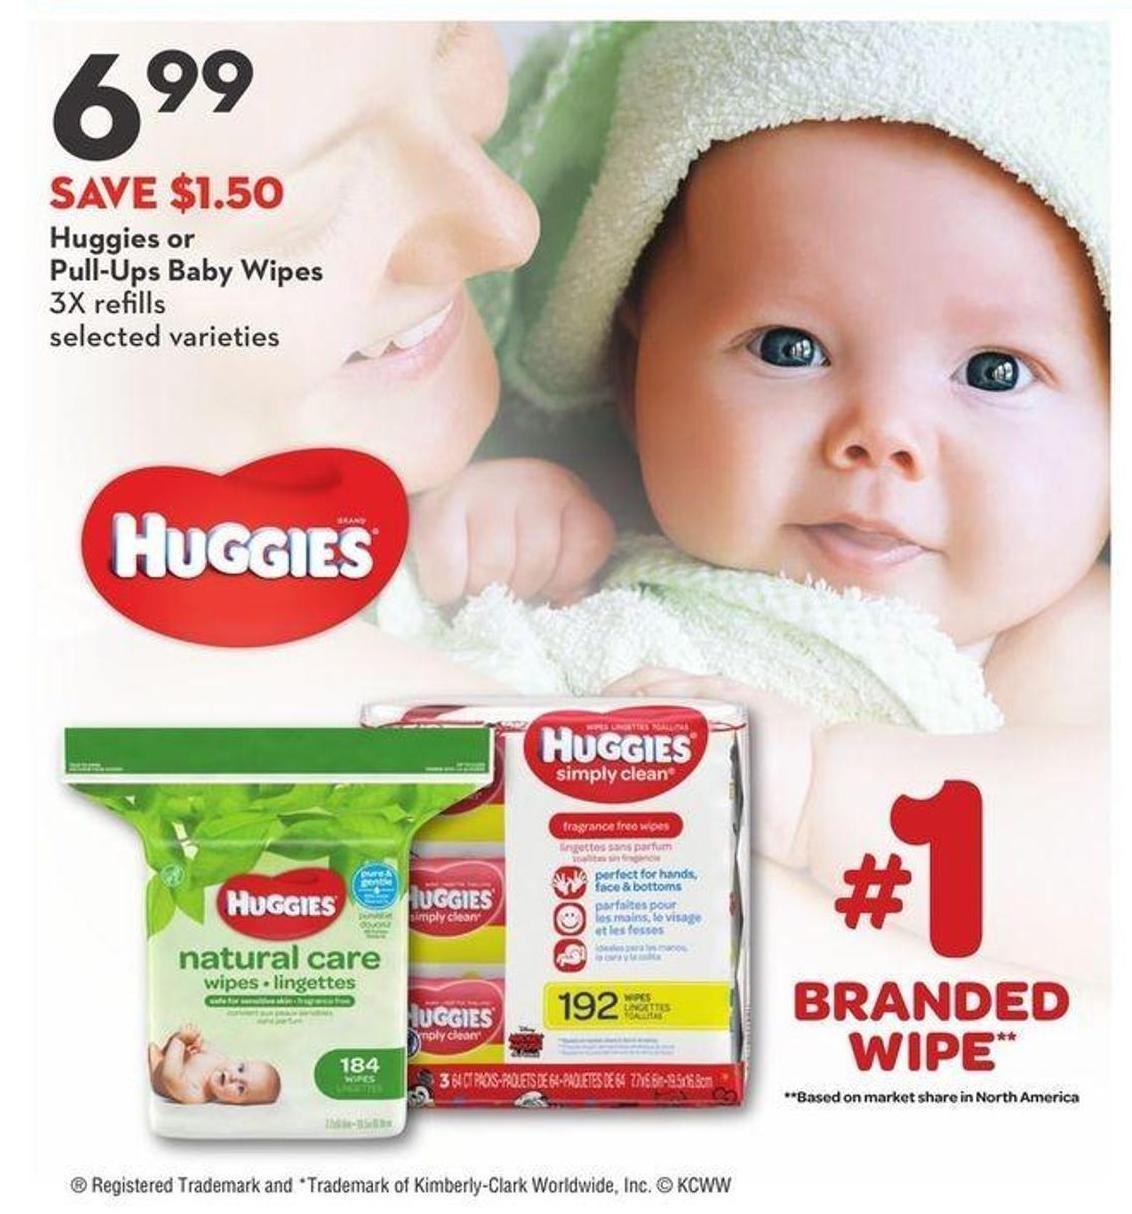 Huggies or Pull-Ups Baby Wipes